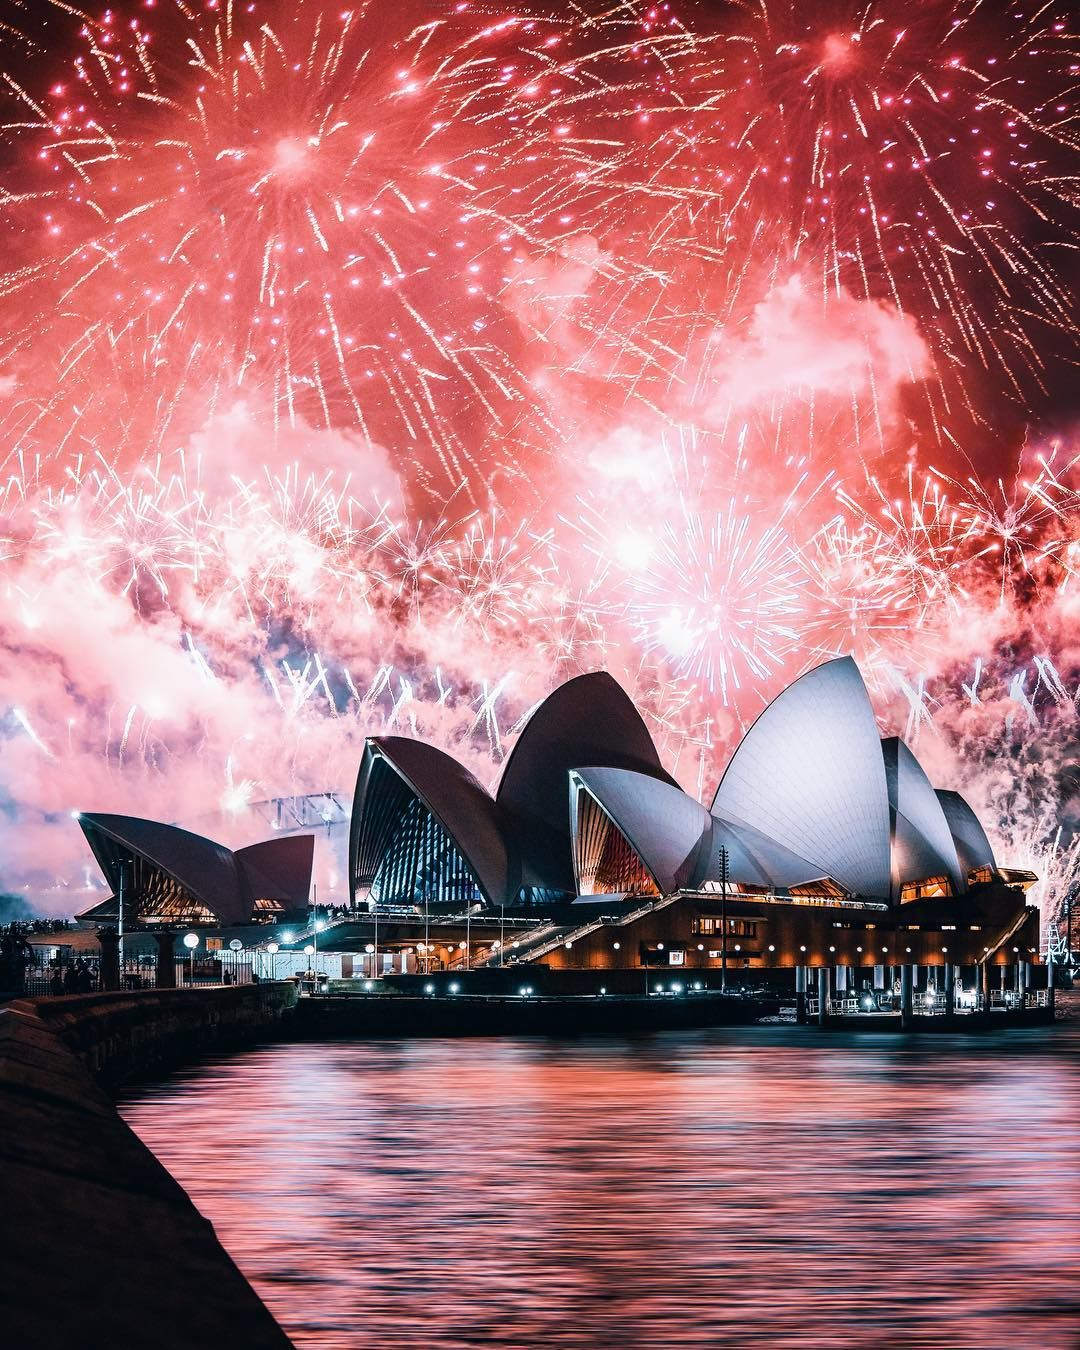 Sony Alpha On Instagram Happy New Year Friends To Celebrate Talented Photographer Demas Shares This Fiery Shot Happy New Year Friends Travel Cool Photos